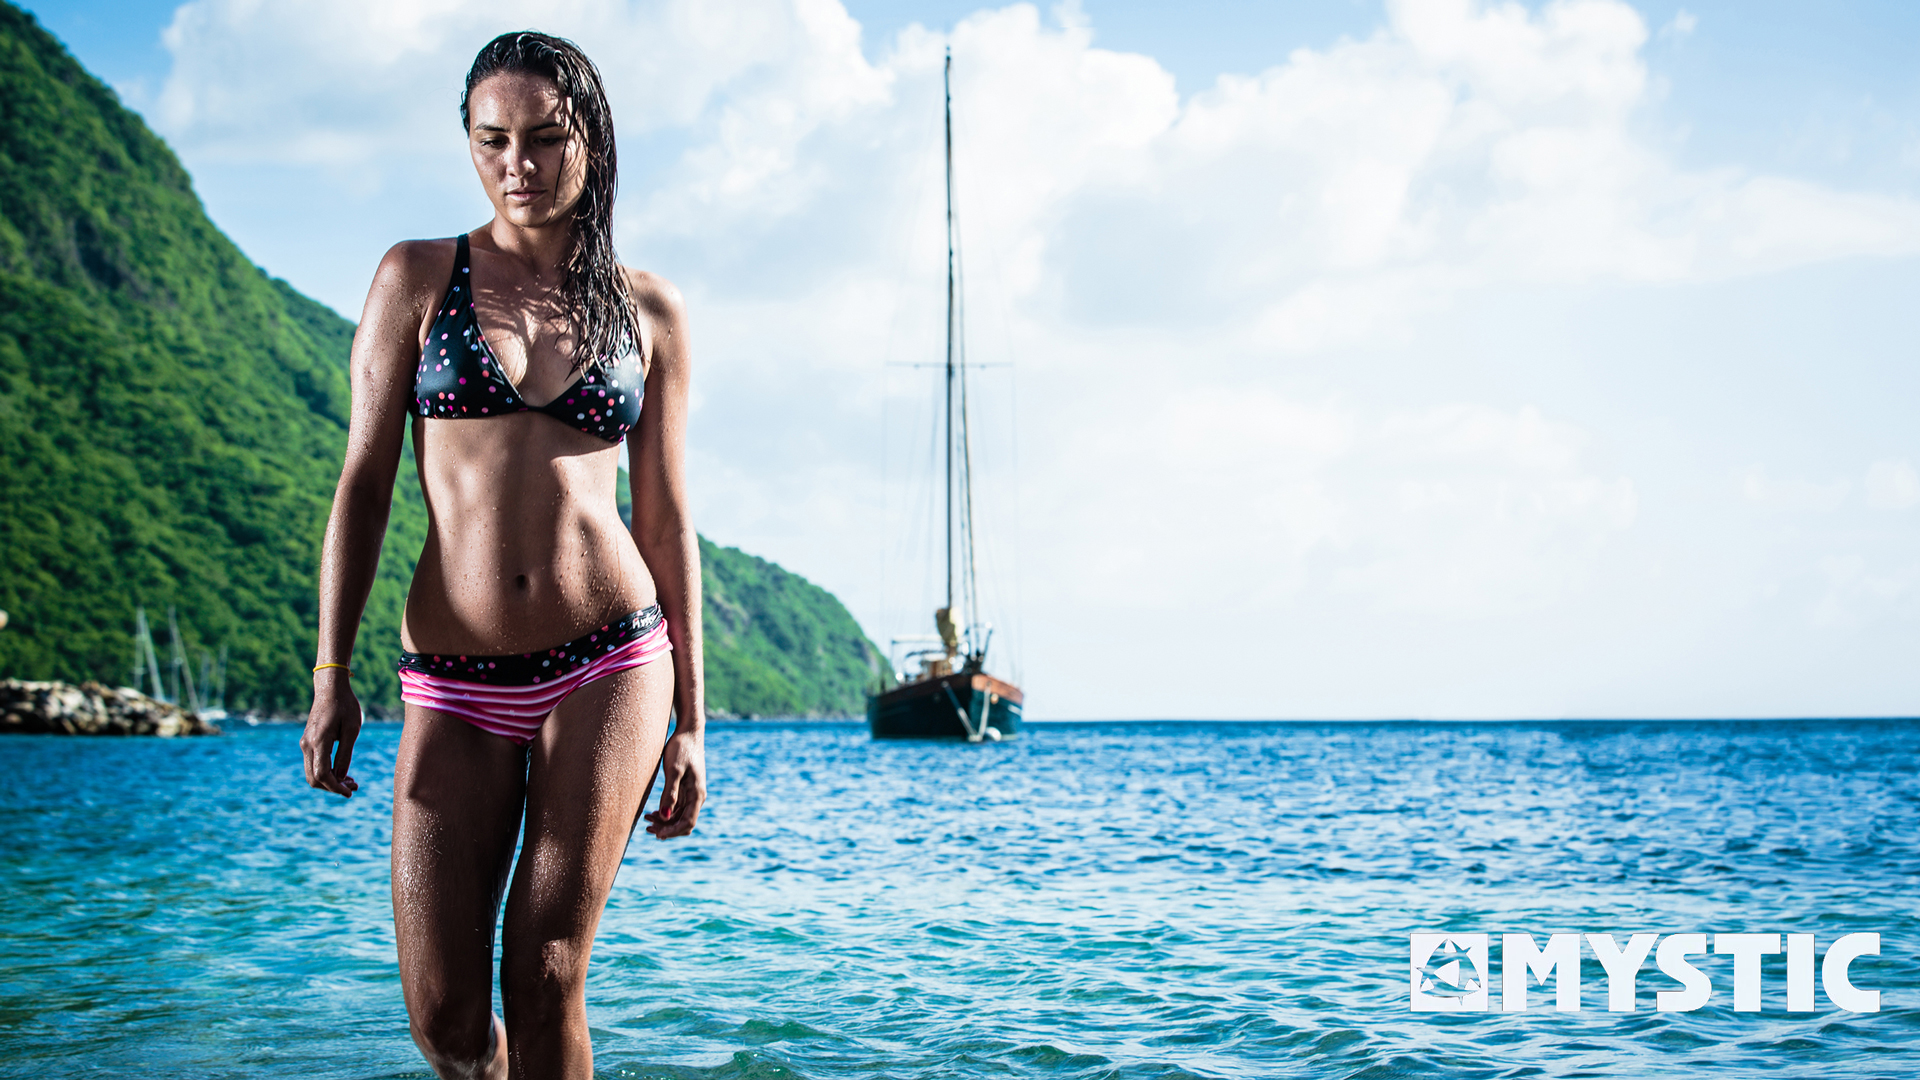 kitesurf wallpaper image - Bruna Kajiya showing off an excellent bikini after a day in the surf. - in resolution: High Definition - HD 16:9 1920 X 1080